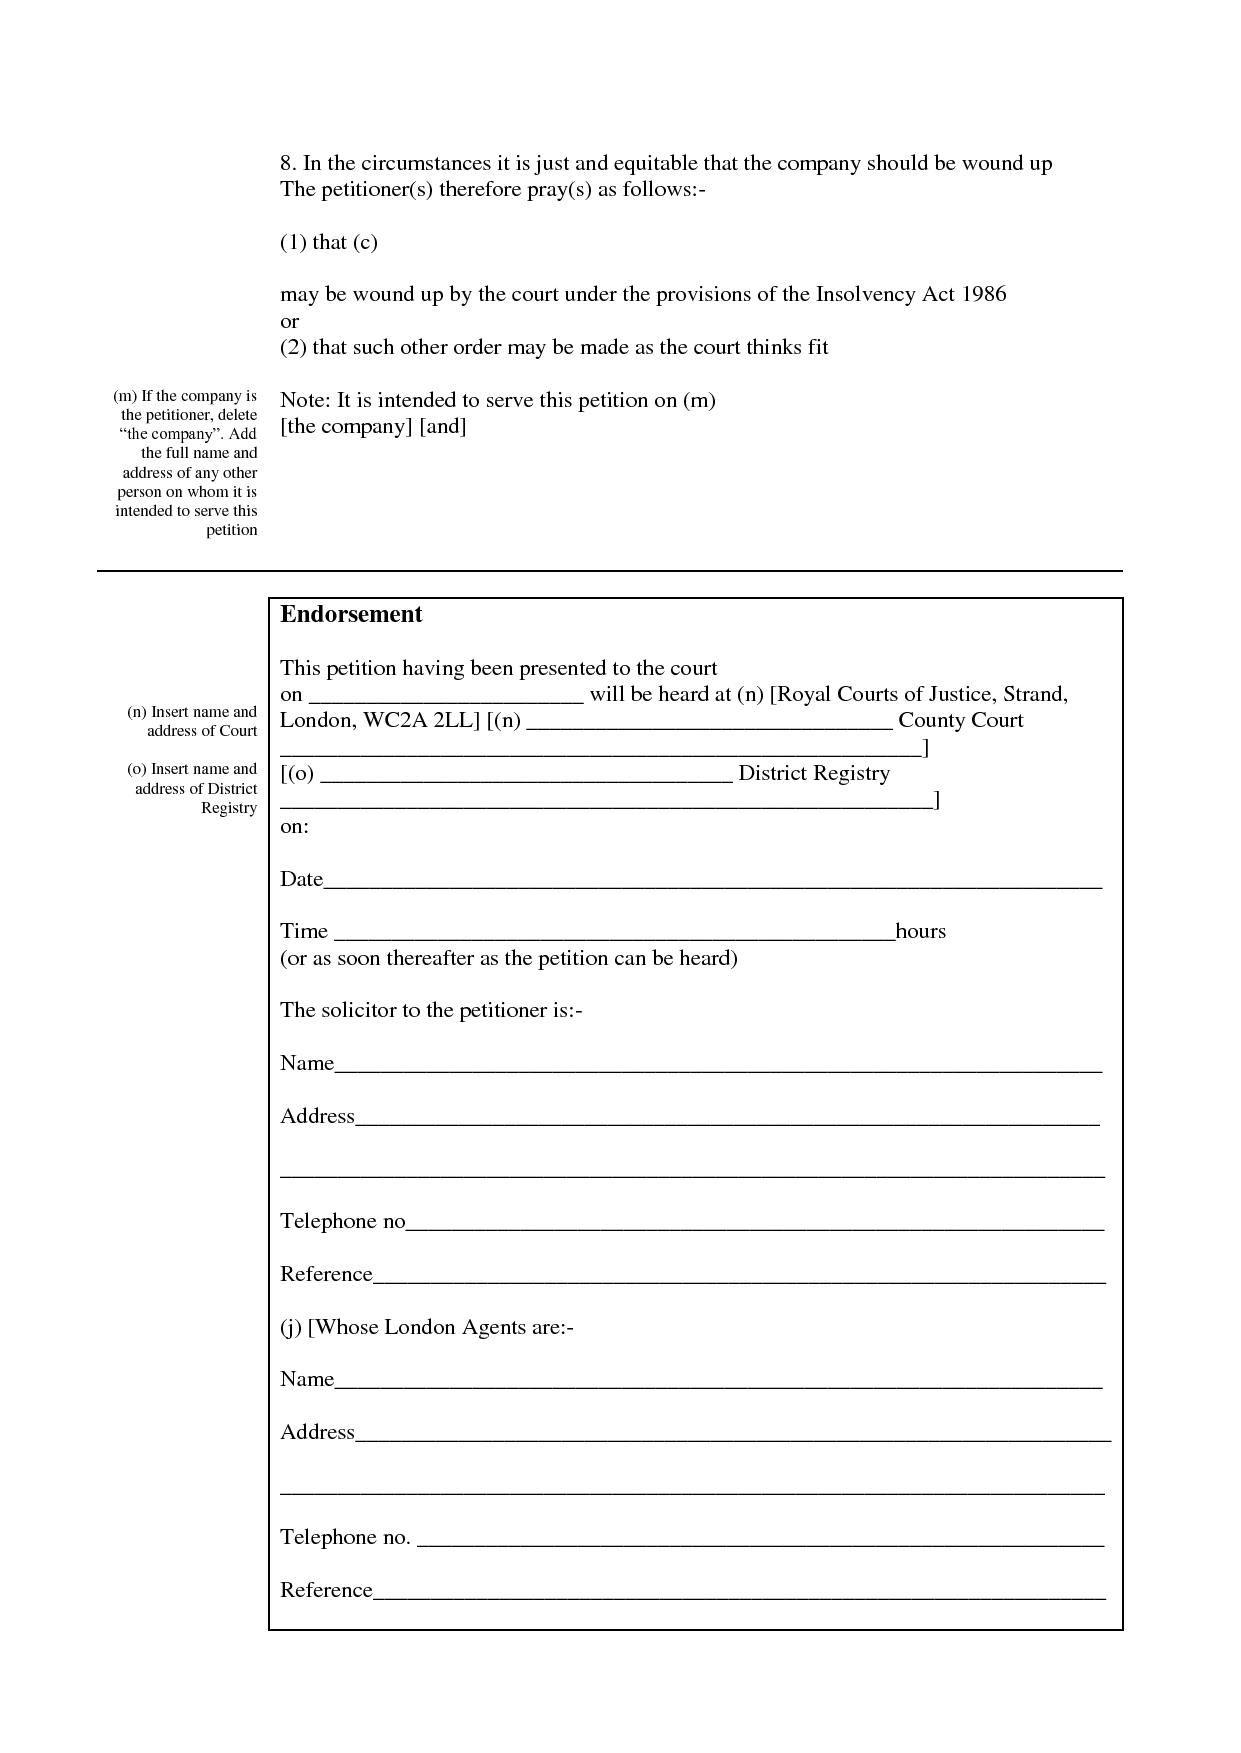 Blank Winding Up Petition Form (Download in .pdf or .doc format)